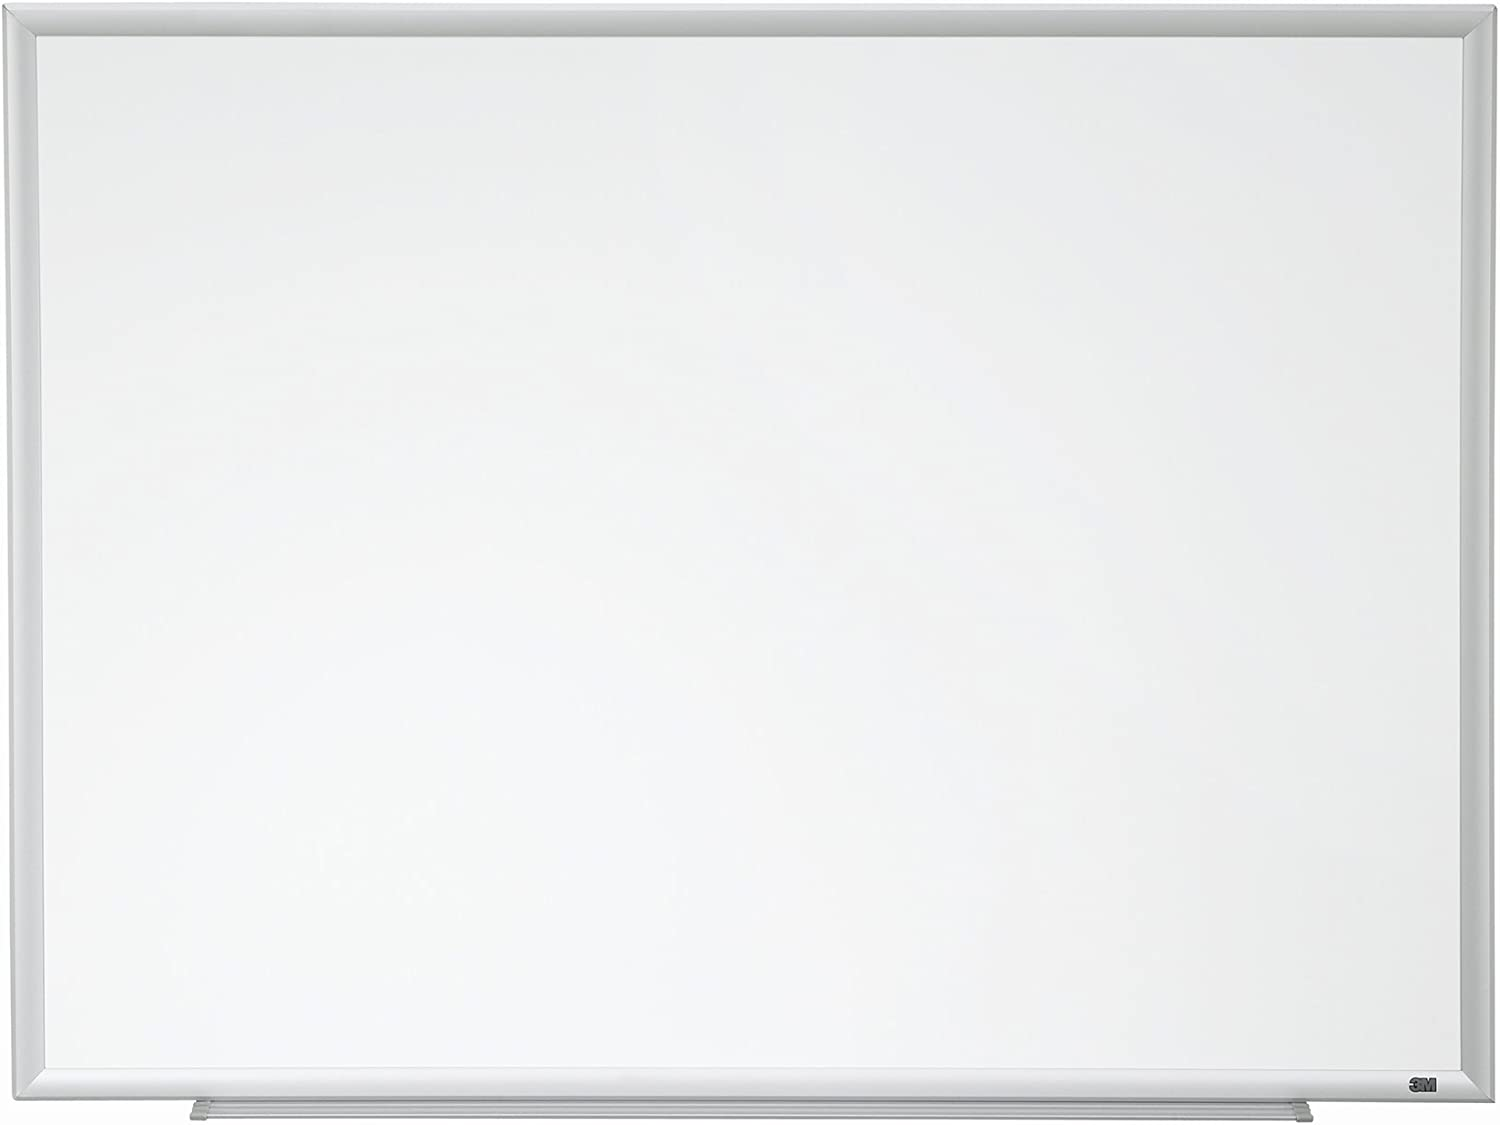 3M Porcelain Dry Erase Board, 96 x 48-Inches, Aluminum Frame